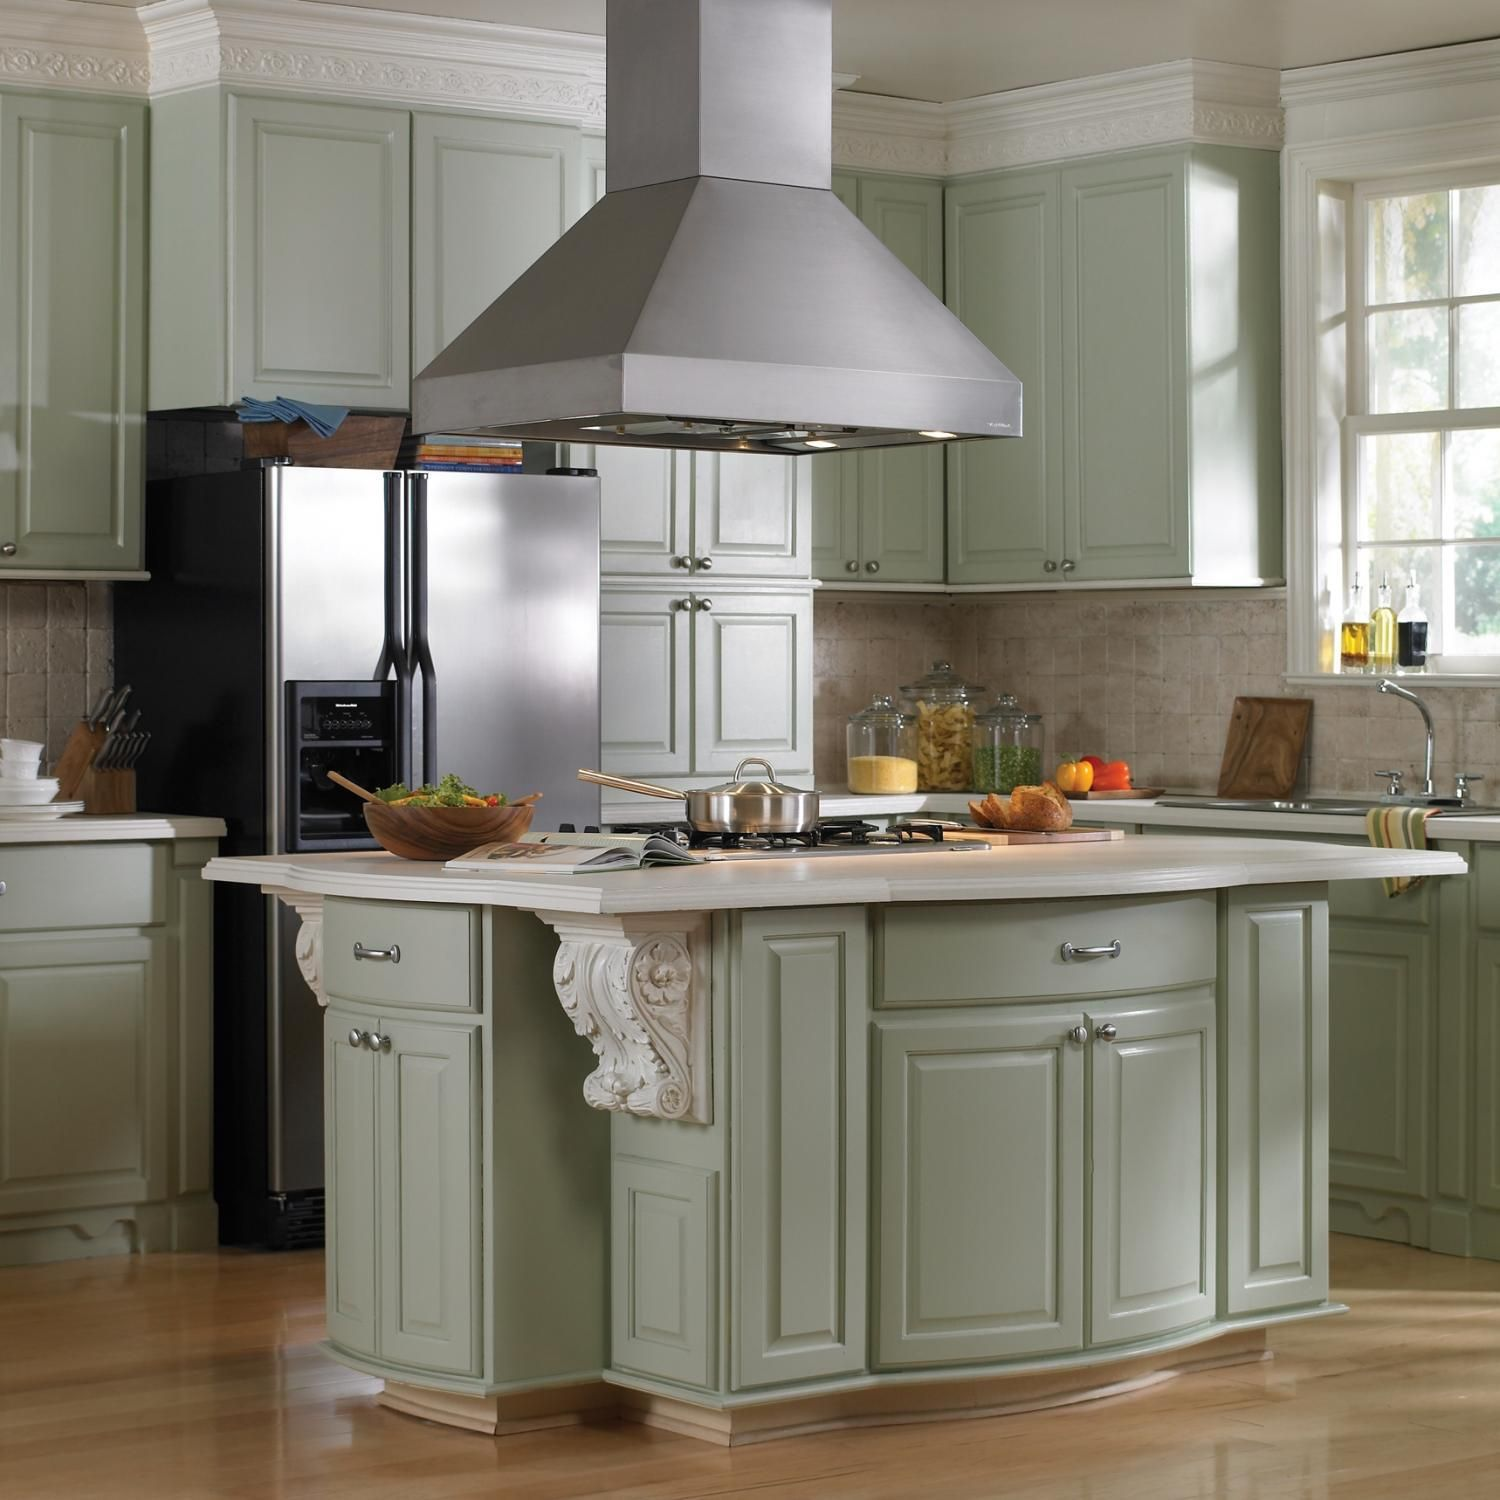 kitchen cabinets menards corner cabinet ceiling fabulous hanging range hood over small island